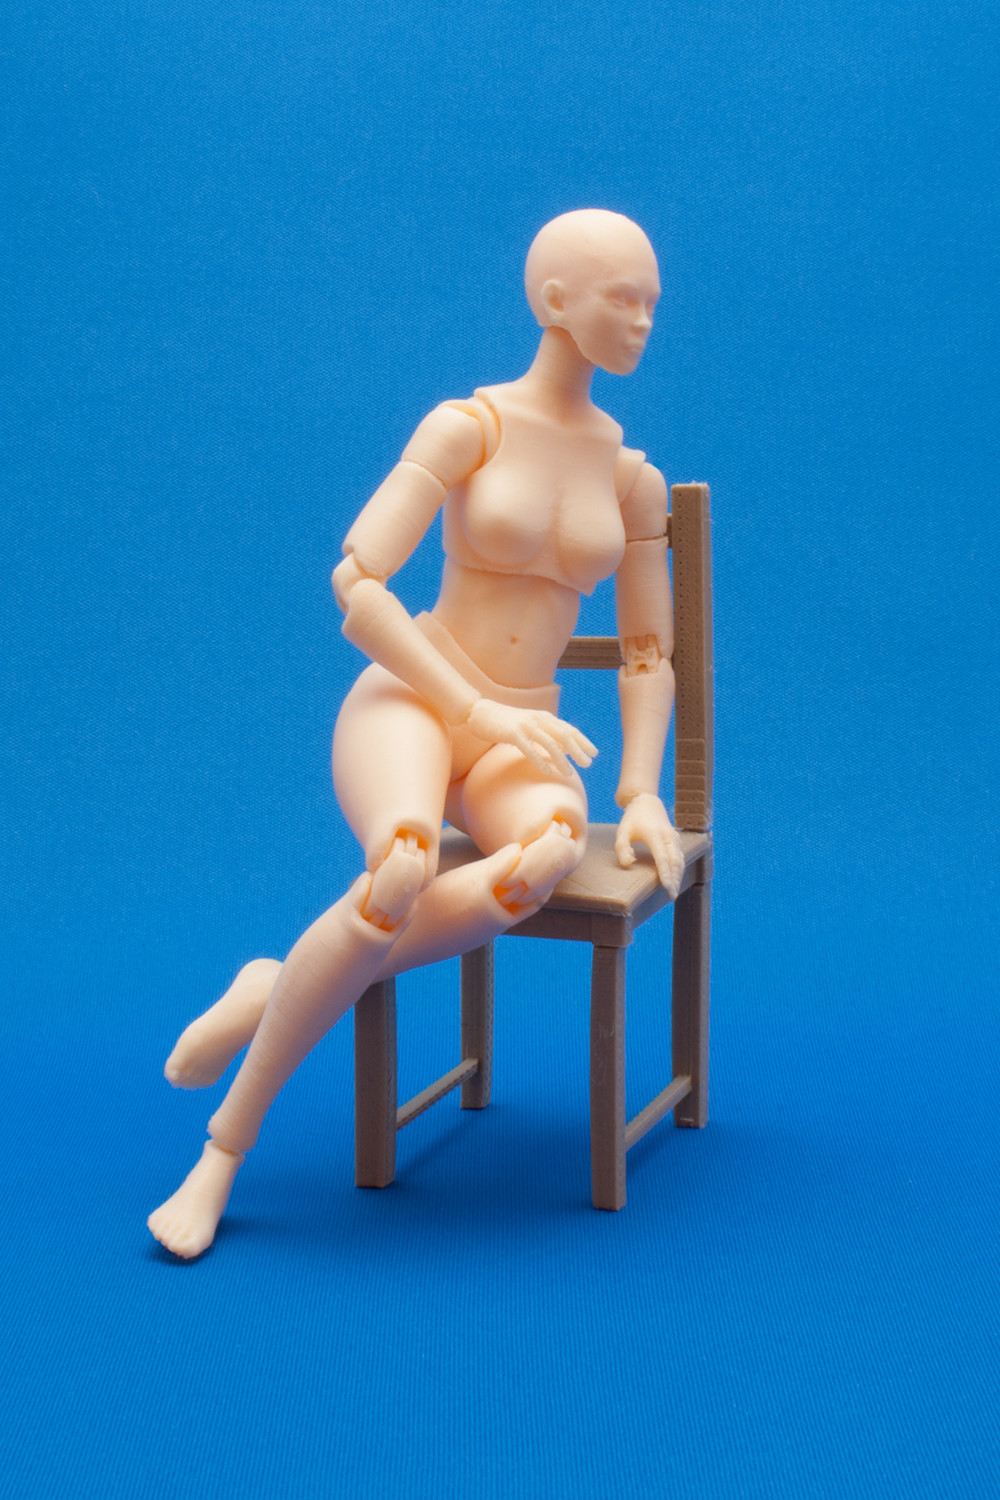 ArtStation - Articulated Poseable Female Figure - 3DPrint Ready